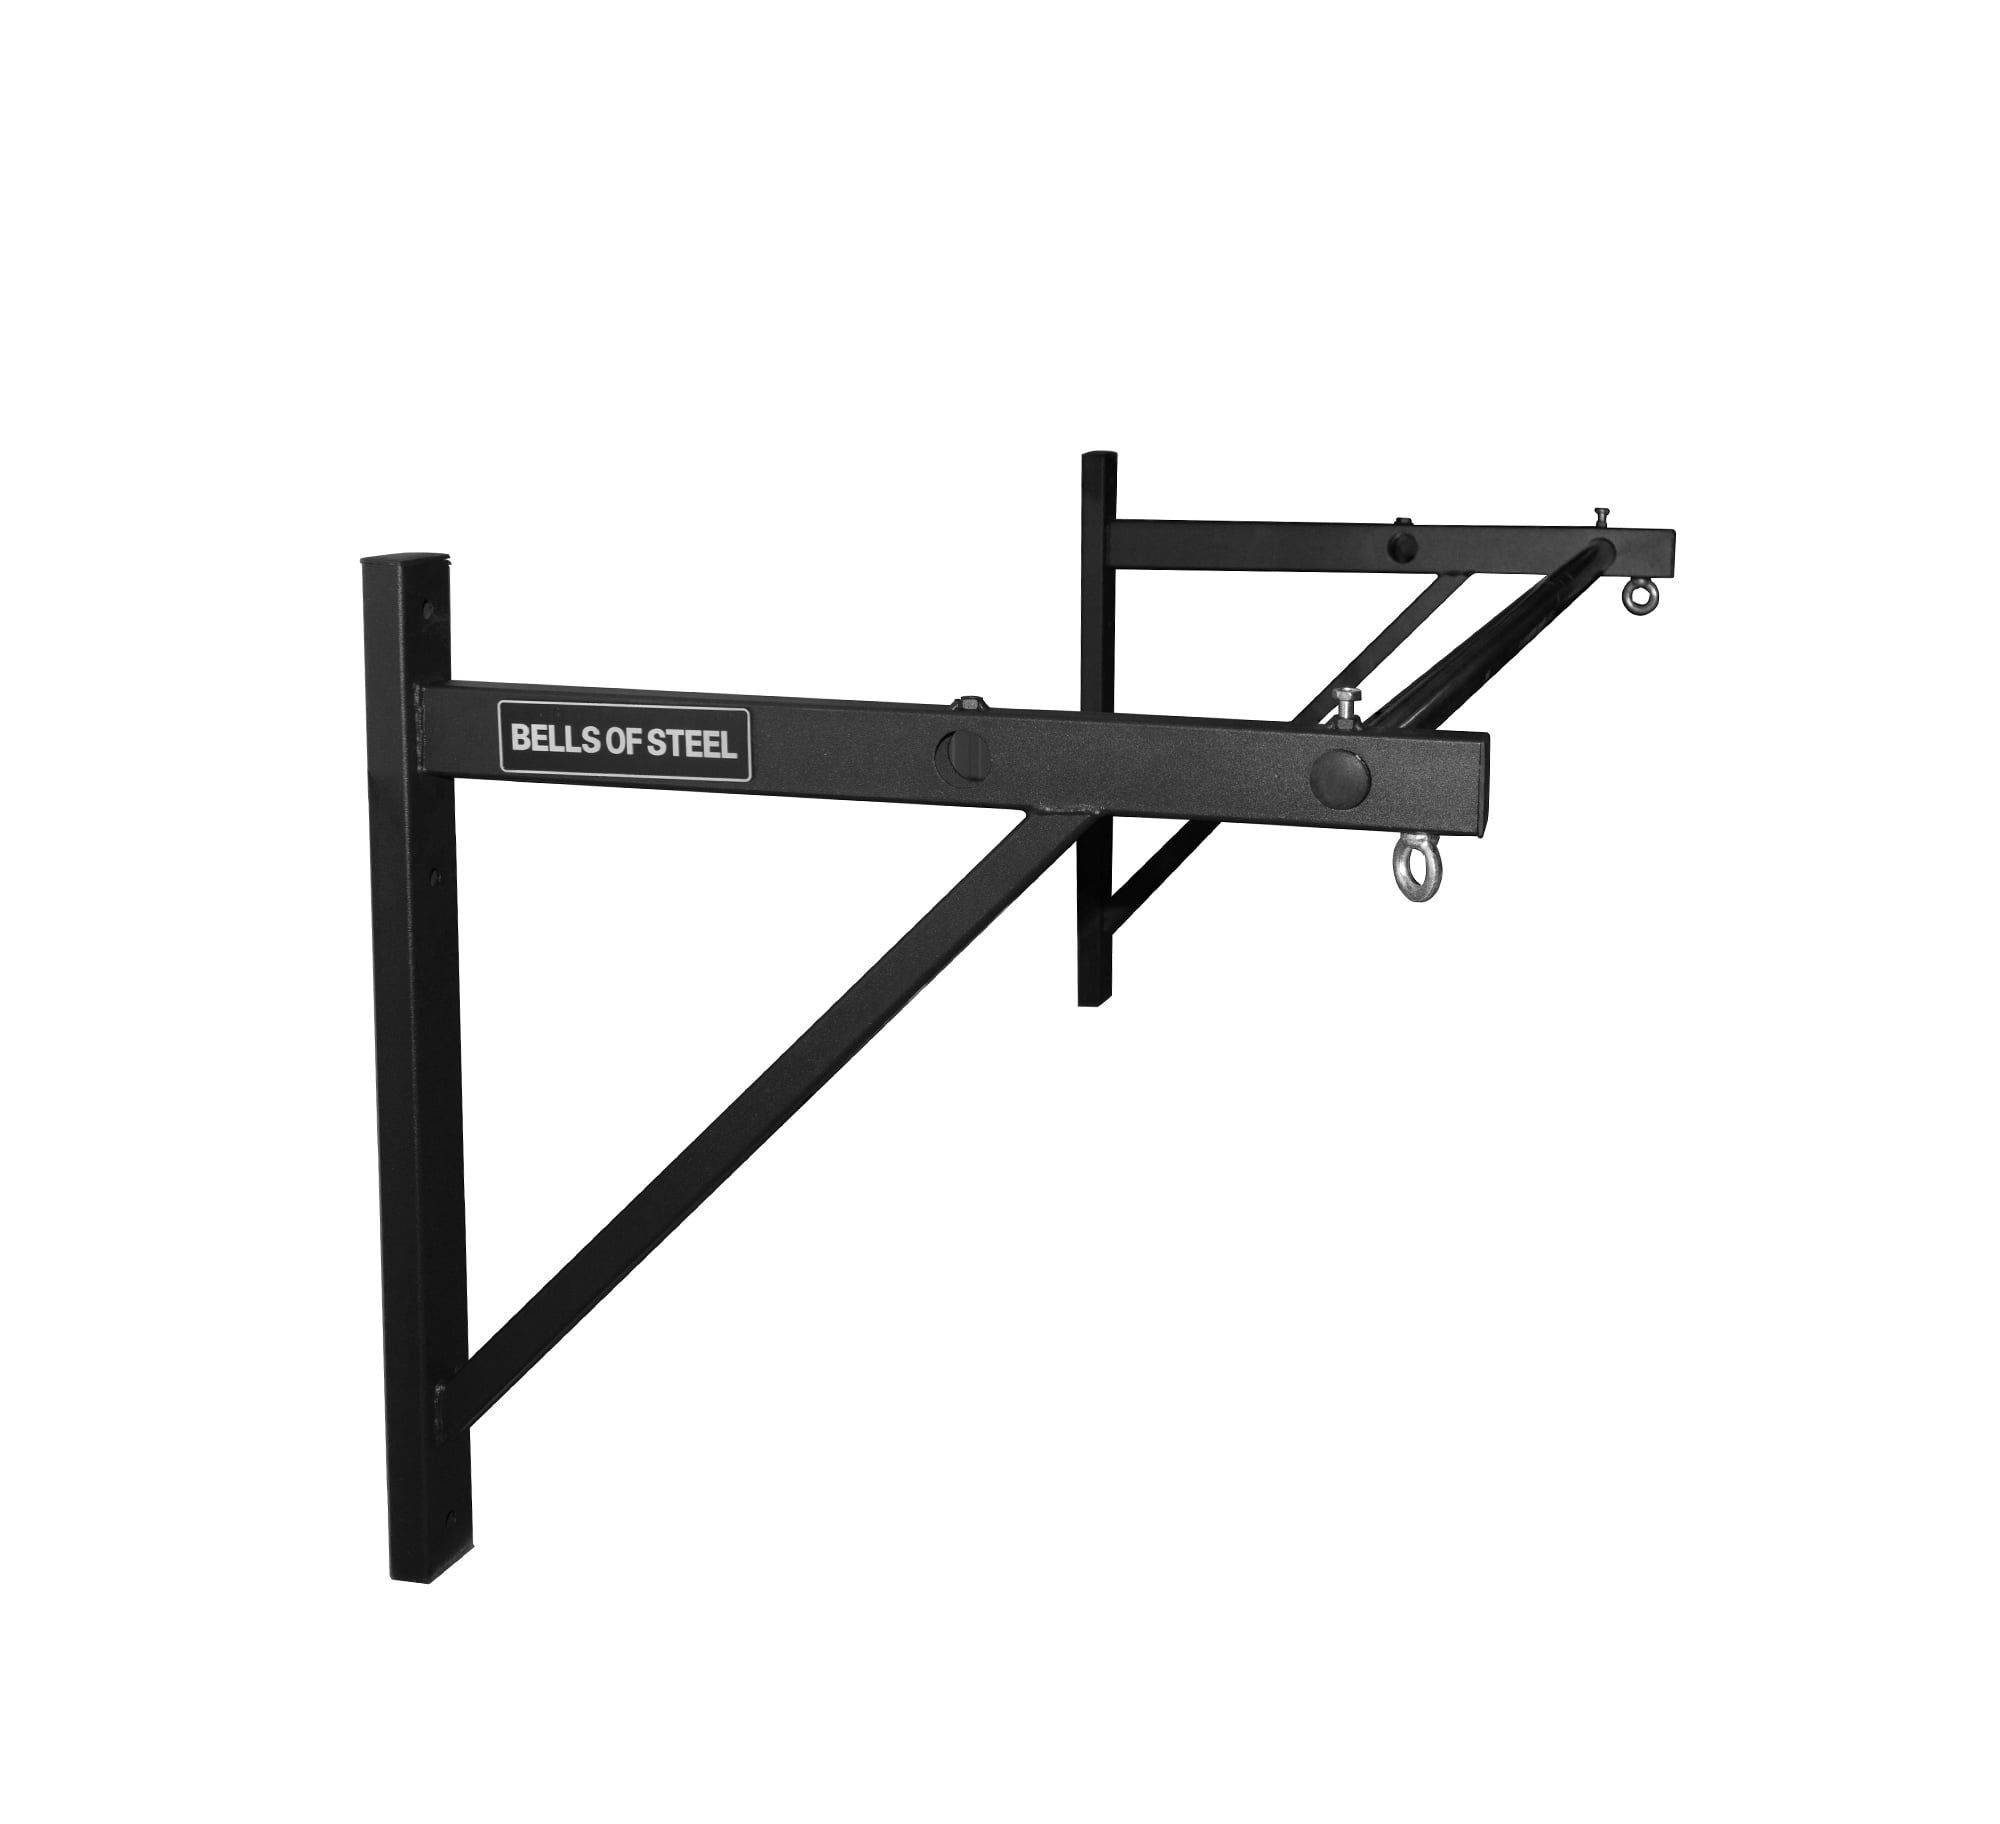 wall_ceiling_pull_up_bar_3